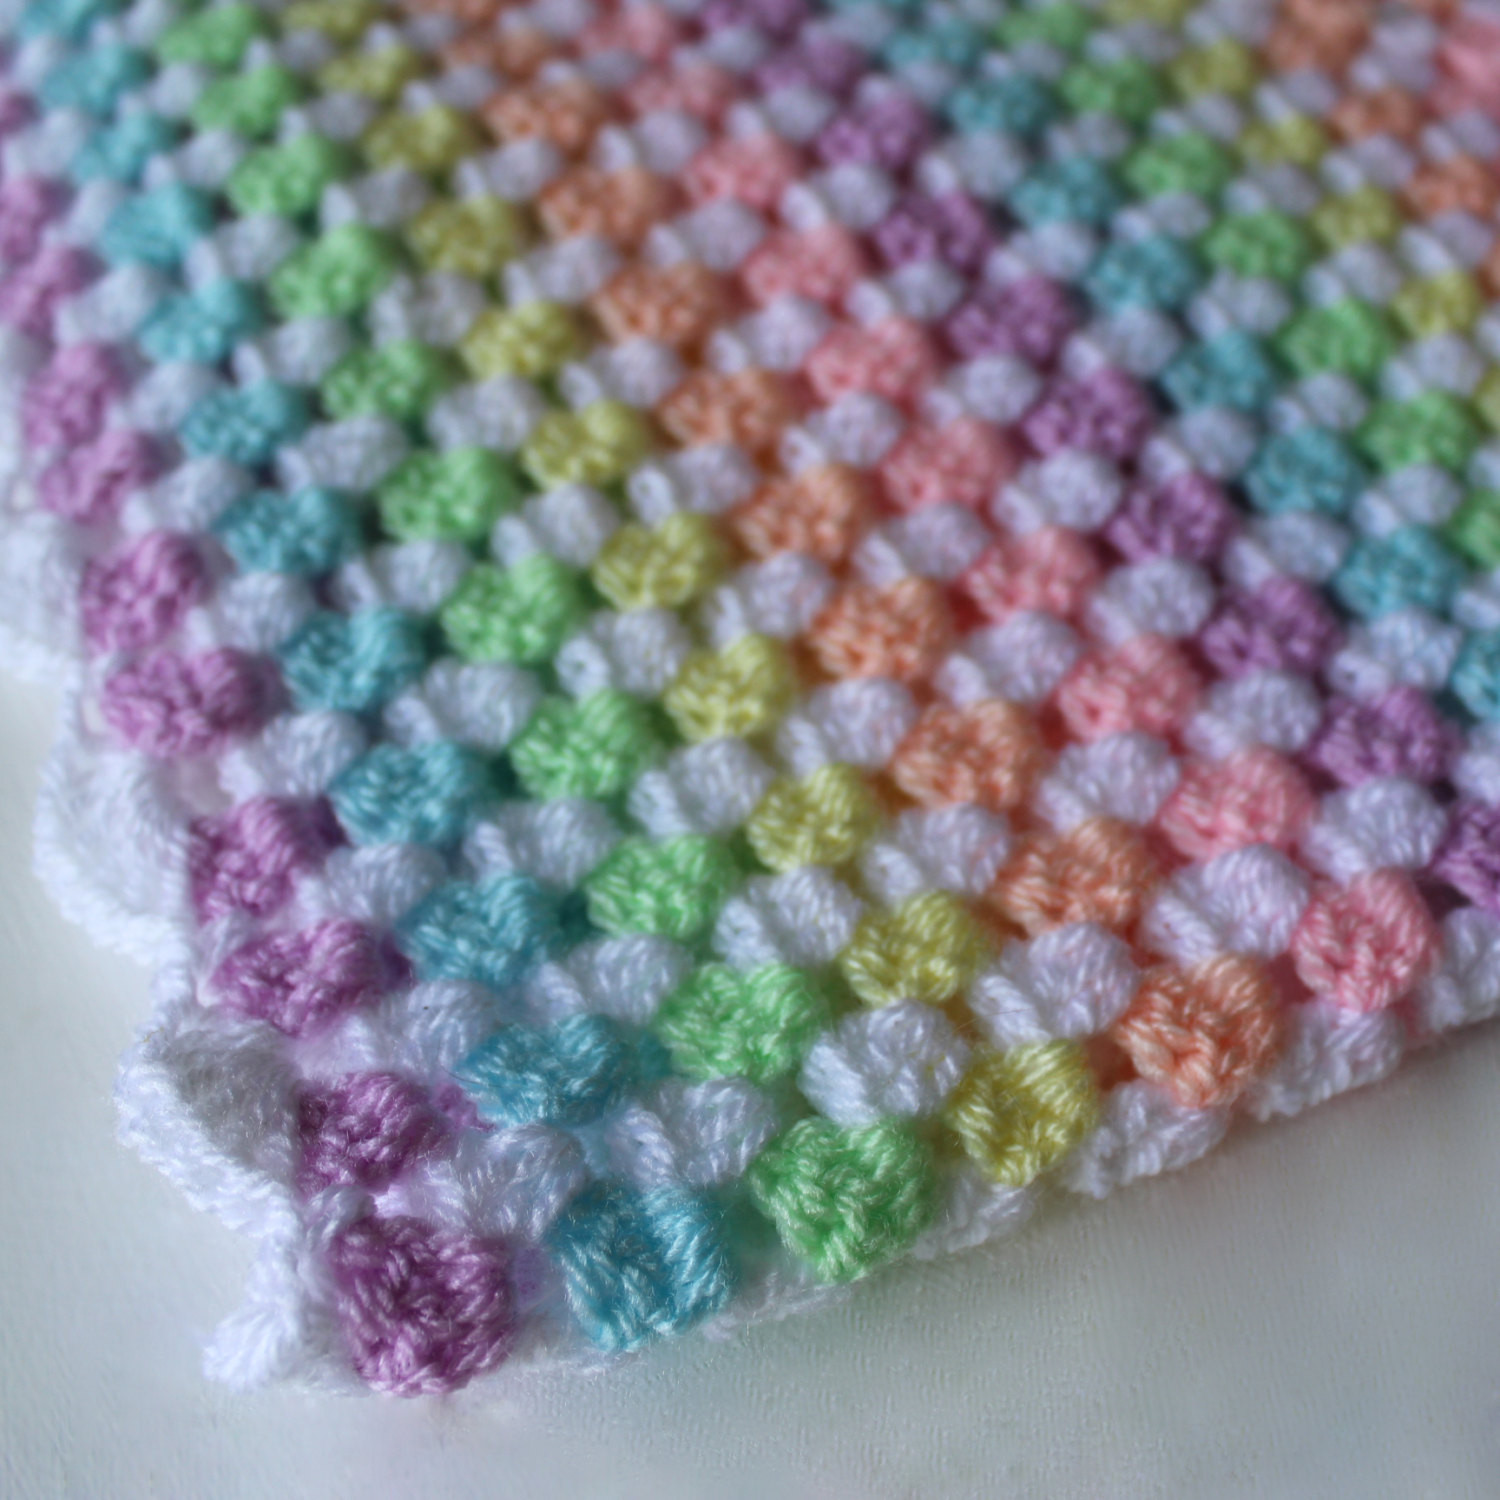 Rainbow Baby Blanket Beautiful Crochet Baby Blanket Granny Square Blanket Rainbow Baby Of Charming 42 Ideas Rainbow Baby Blanket